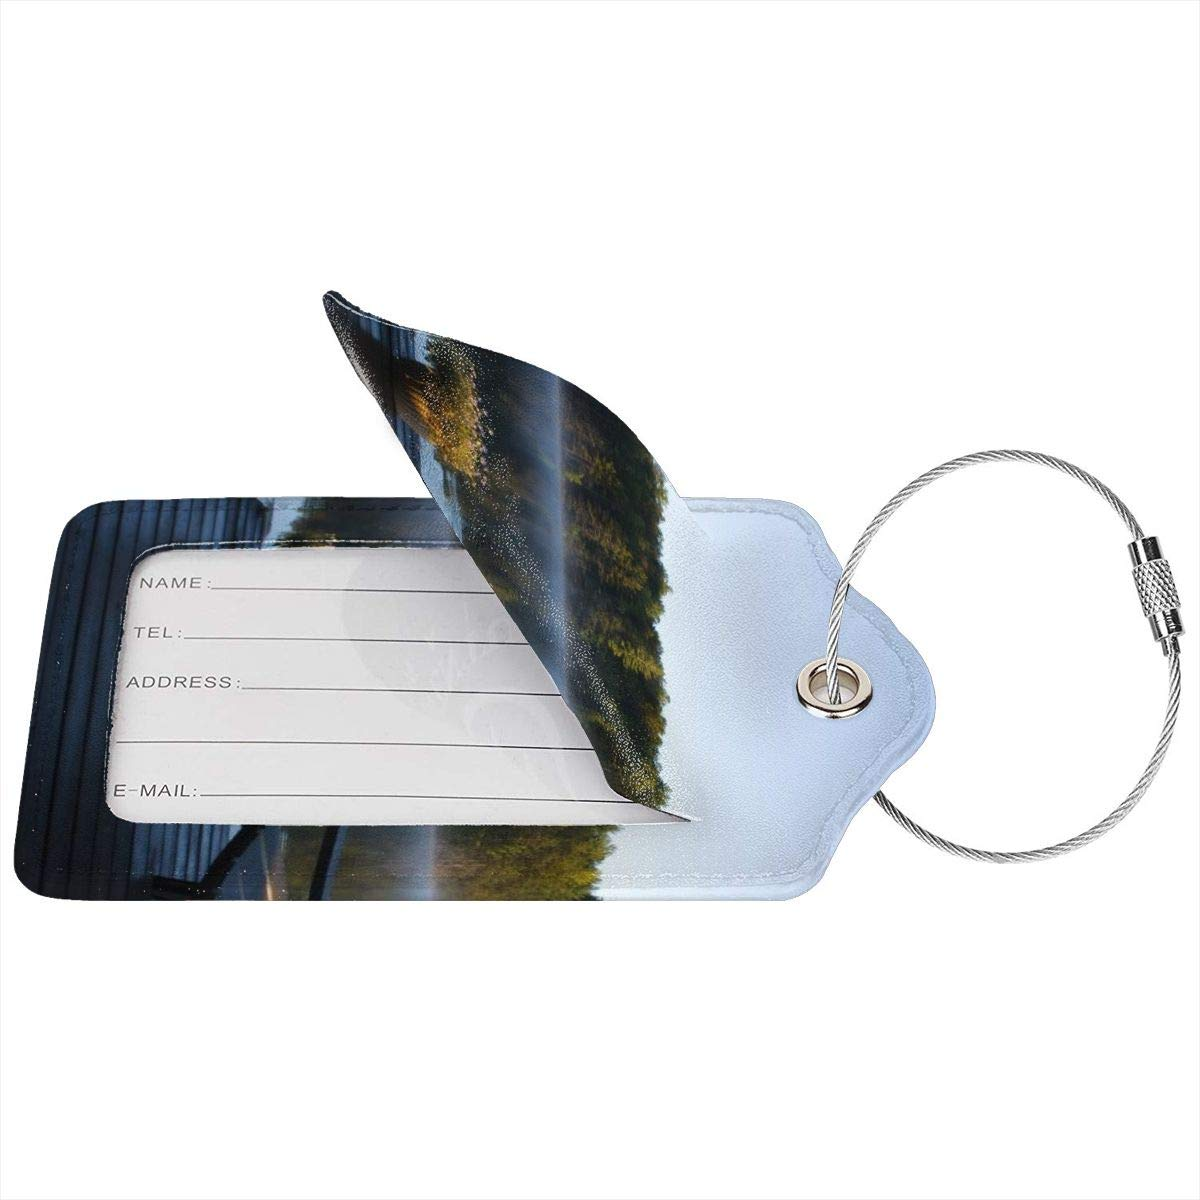 Morning View At Weslemkoon Lake Luggage Tag Label Travel Bag Label With Privacy Cover Luggage Tag Leather Personalized Suitcase Tag Travel Accessories